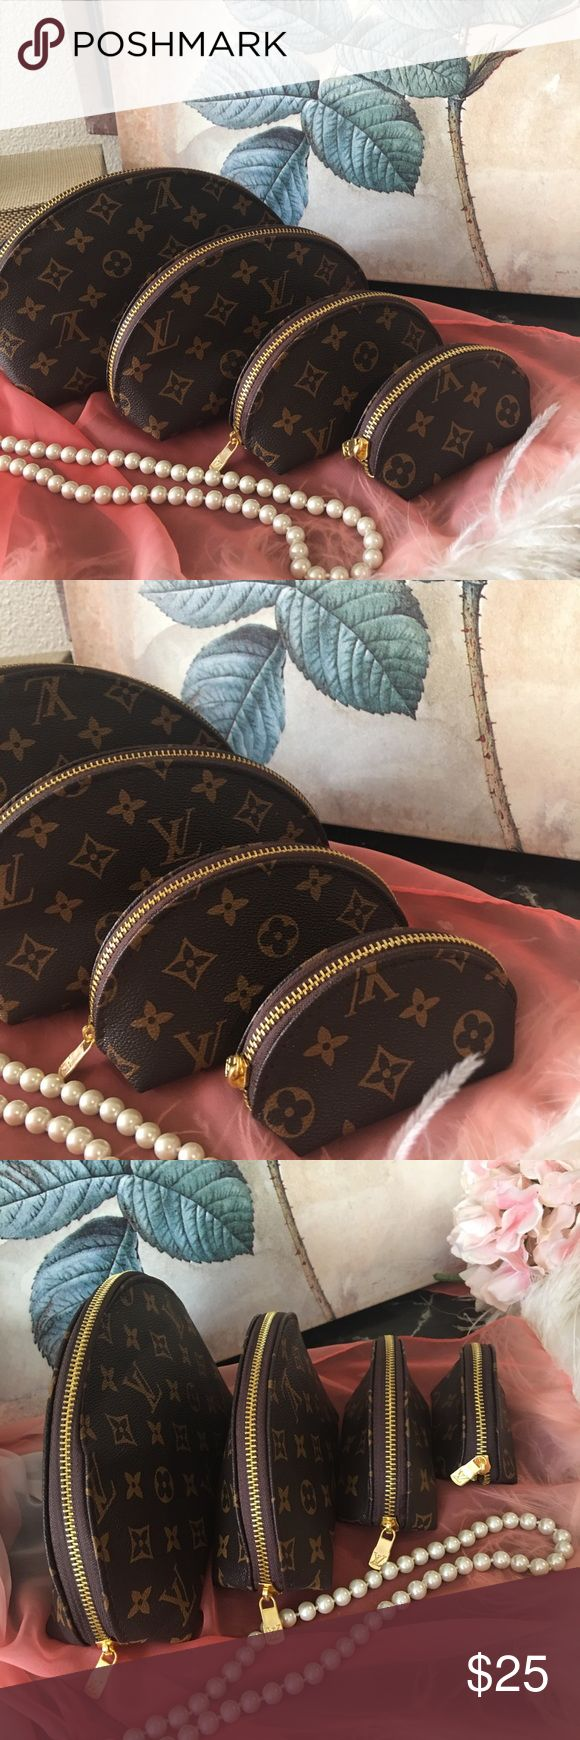 Monogram cosmetic bag set of 4 NEW Set of 4 monogram faux leather cosmetic/makeup bags/storage bags. Please see photo for all measurements. These are faux LV. none Bags Cosmetic Bags & Cases